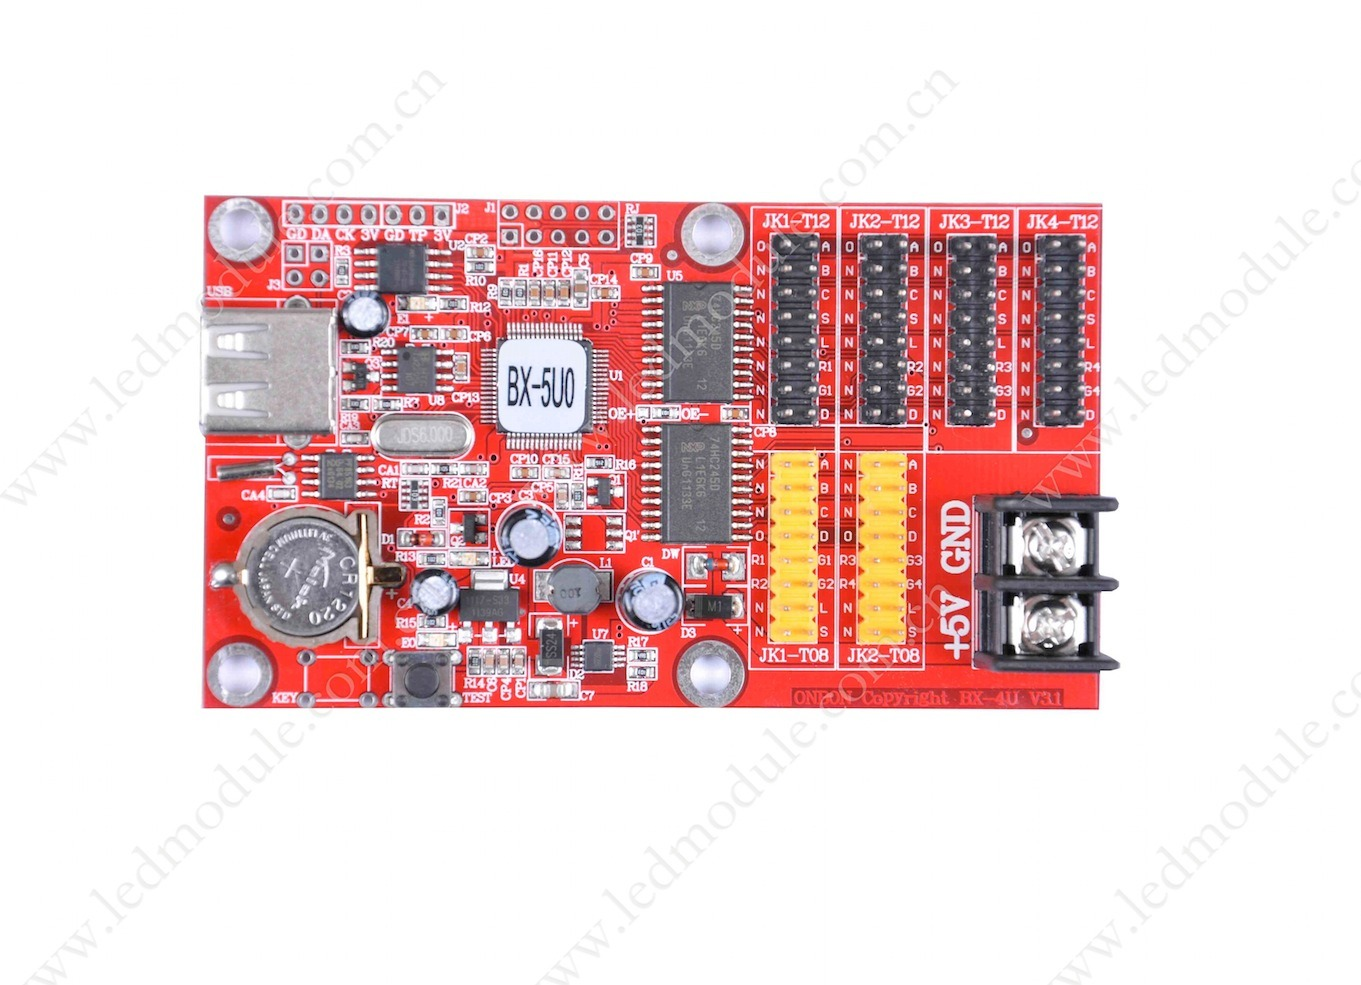 USB LED Controller for Bus (BX-5U0)